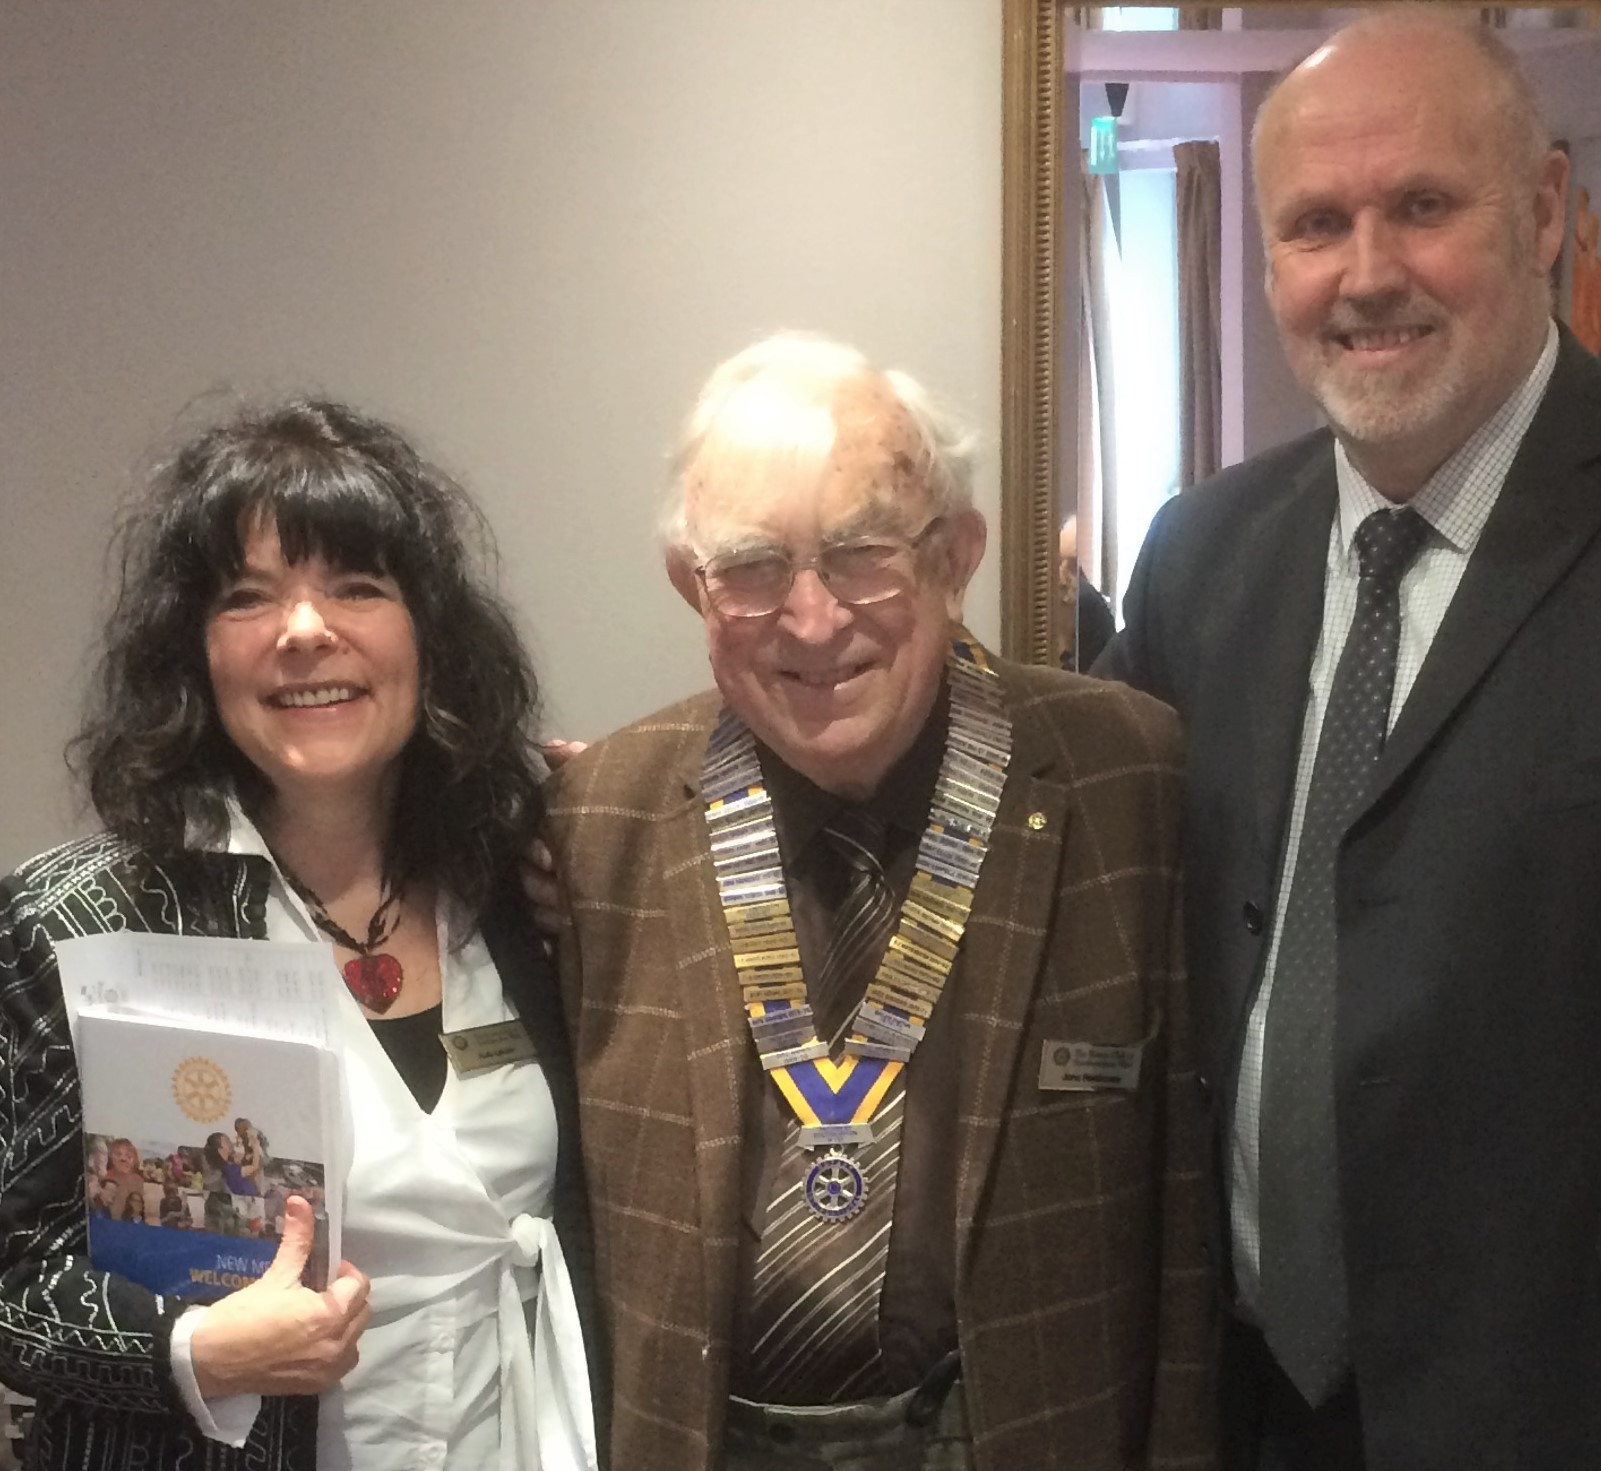 John Parkhouse had the pleasure of inducting Ruth LeLion and Pete Green into RCSW.